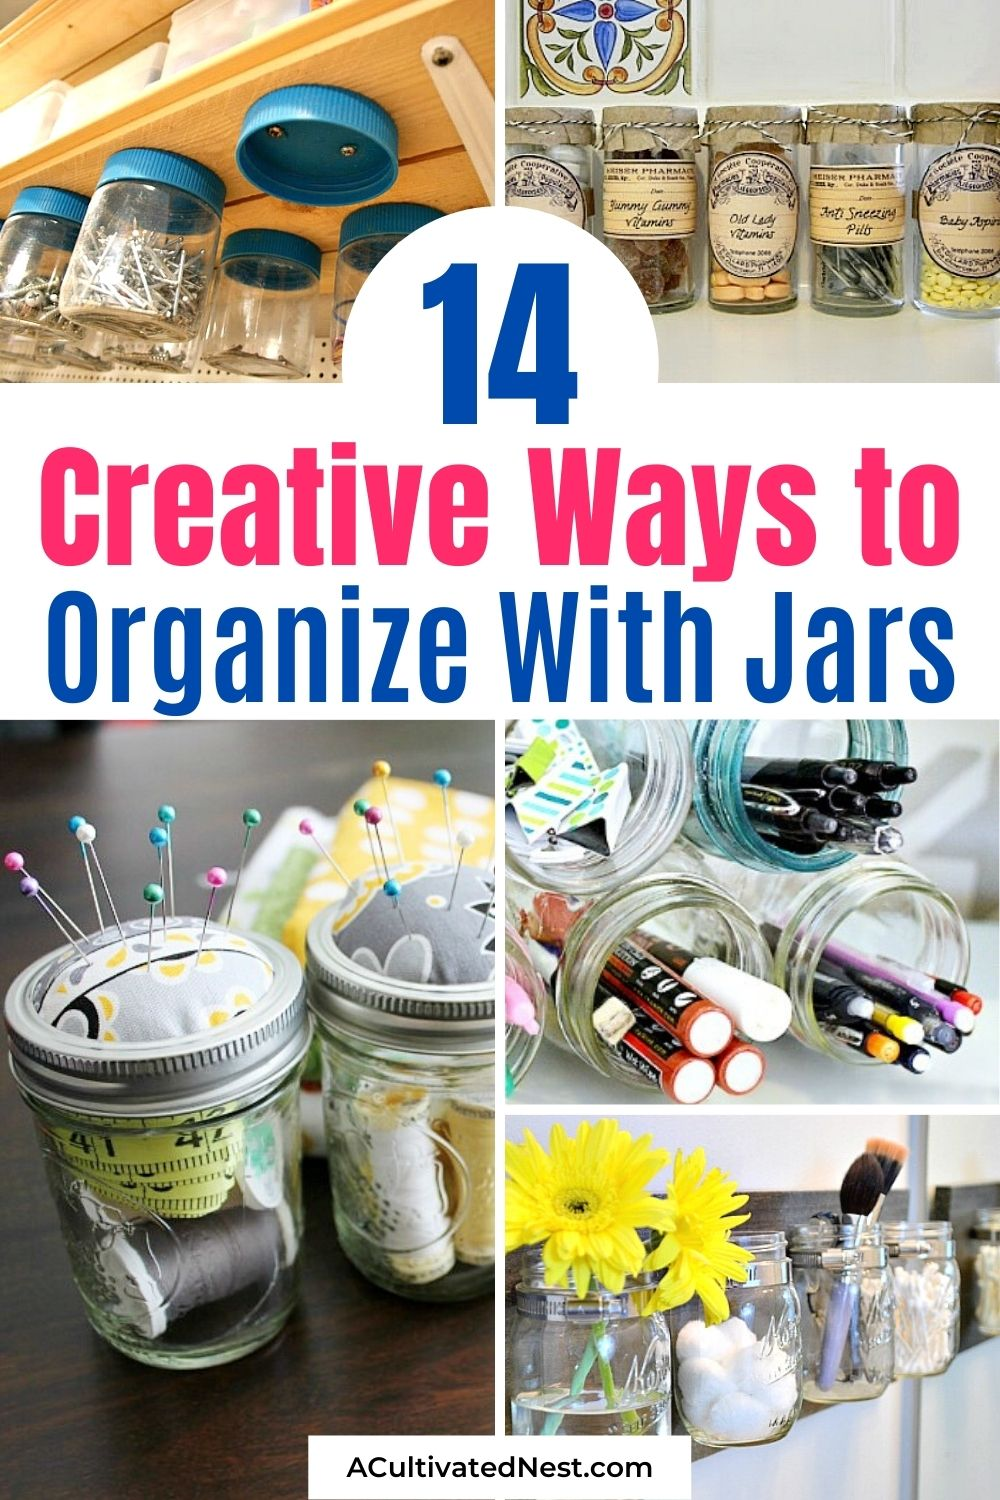 14 Ways To Organize Your Home With Jars- If you want to organize your home, but want to do it on a budget, then you need to get organized with jars! There are so many easy and creative storage solutions you can create with jars!| #organizingIdeas #homeOrganization #frugalLiving #organization #ACultivatedNest